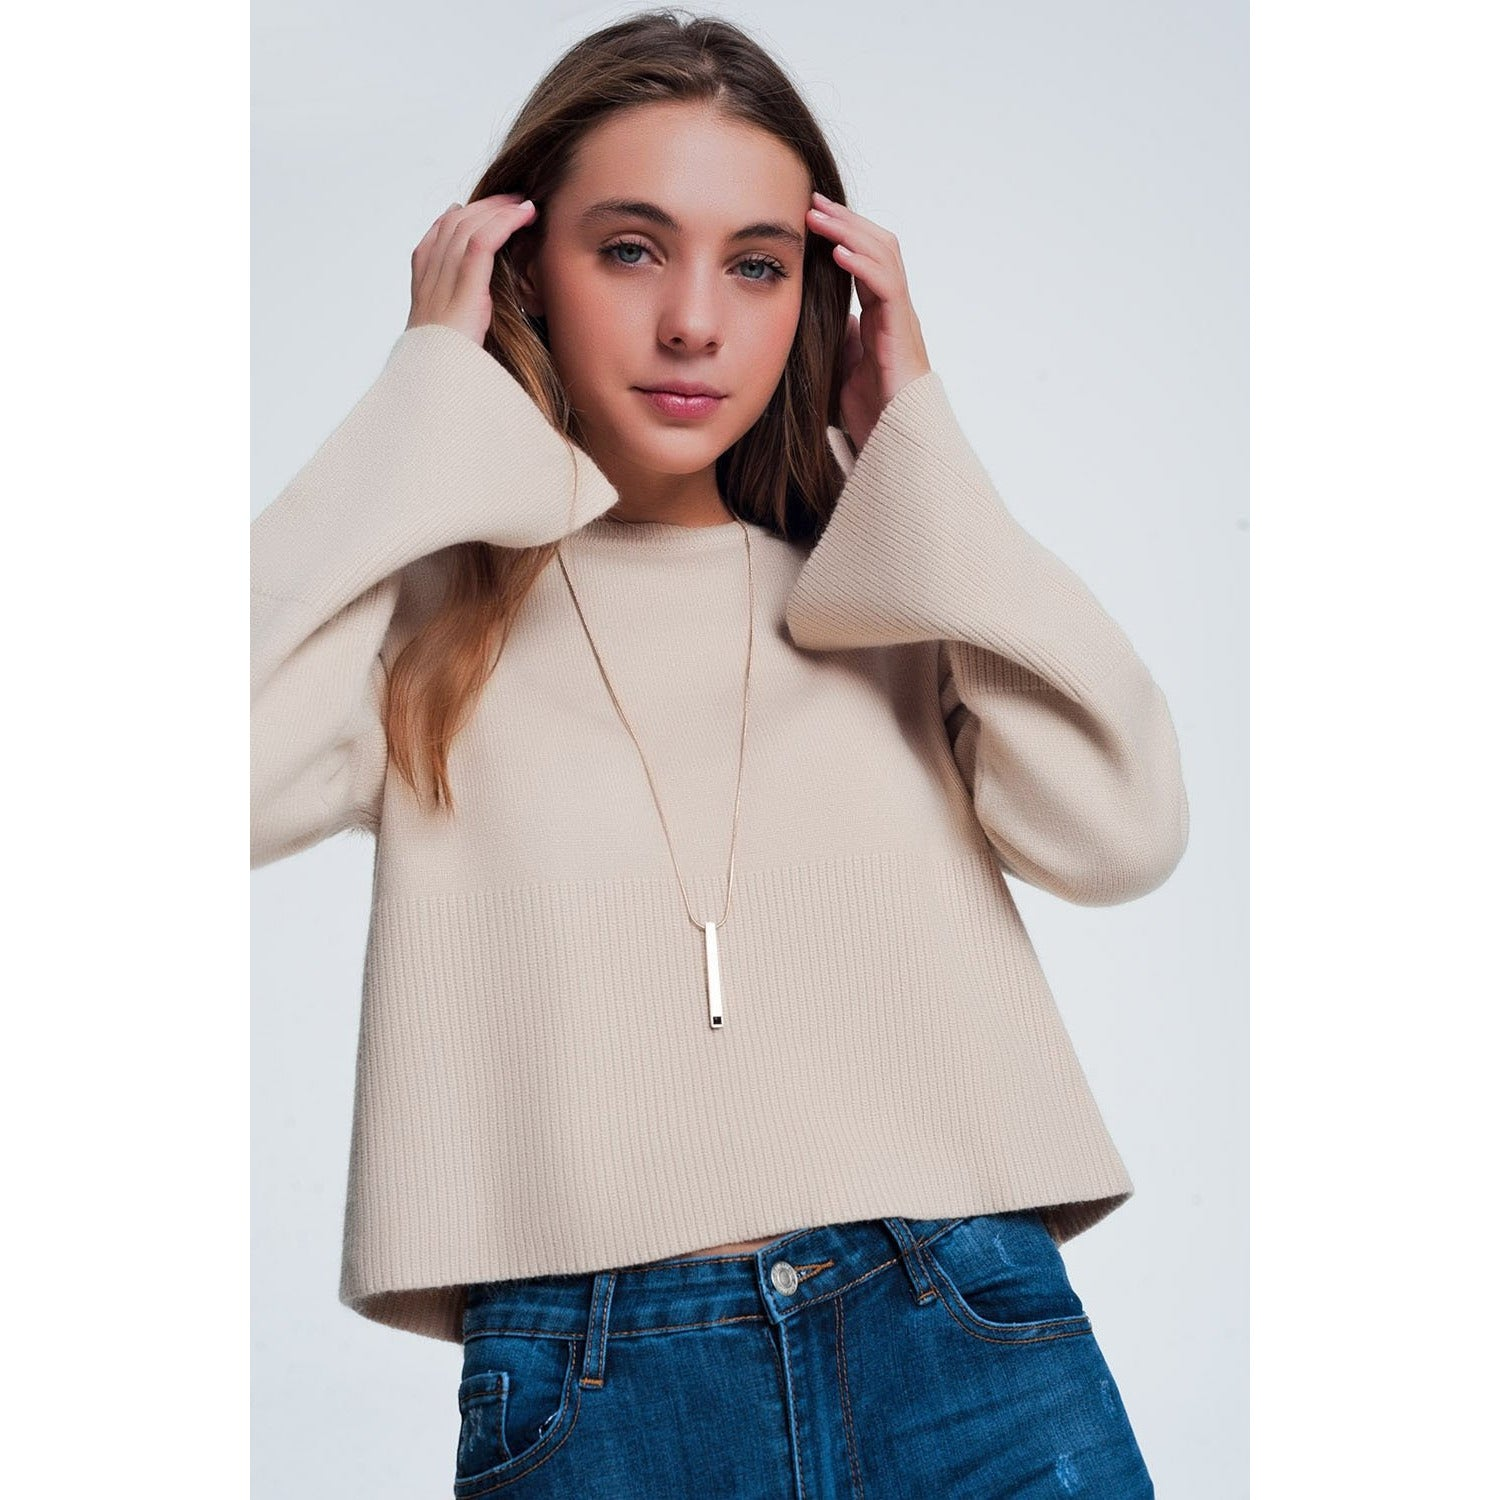 Beige Sweater With Long Sleeves - Miraposa